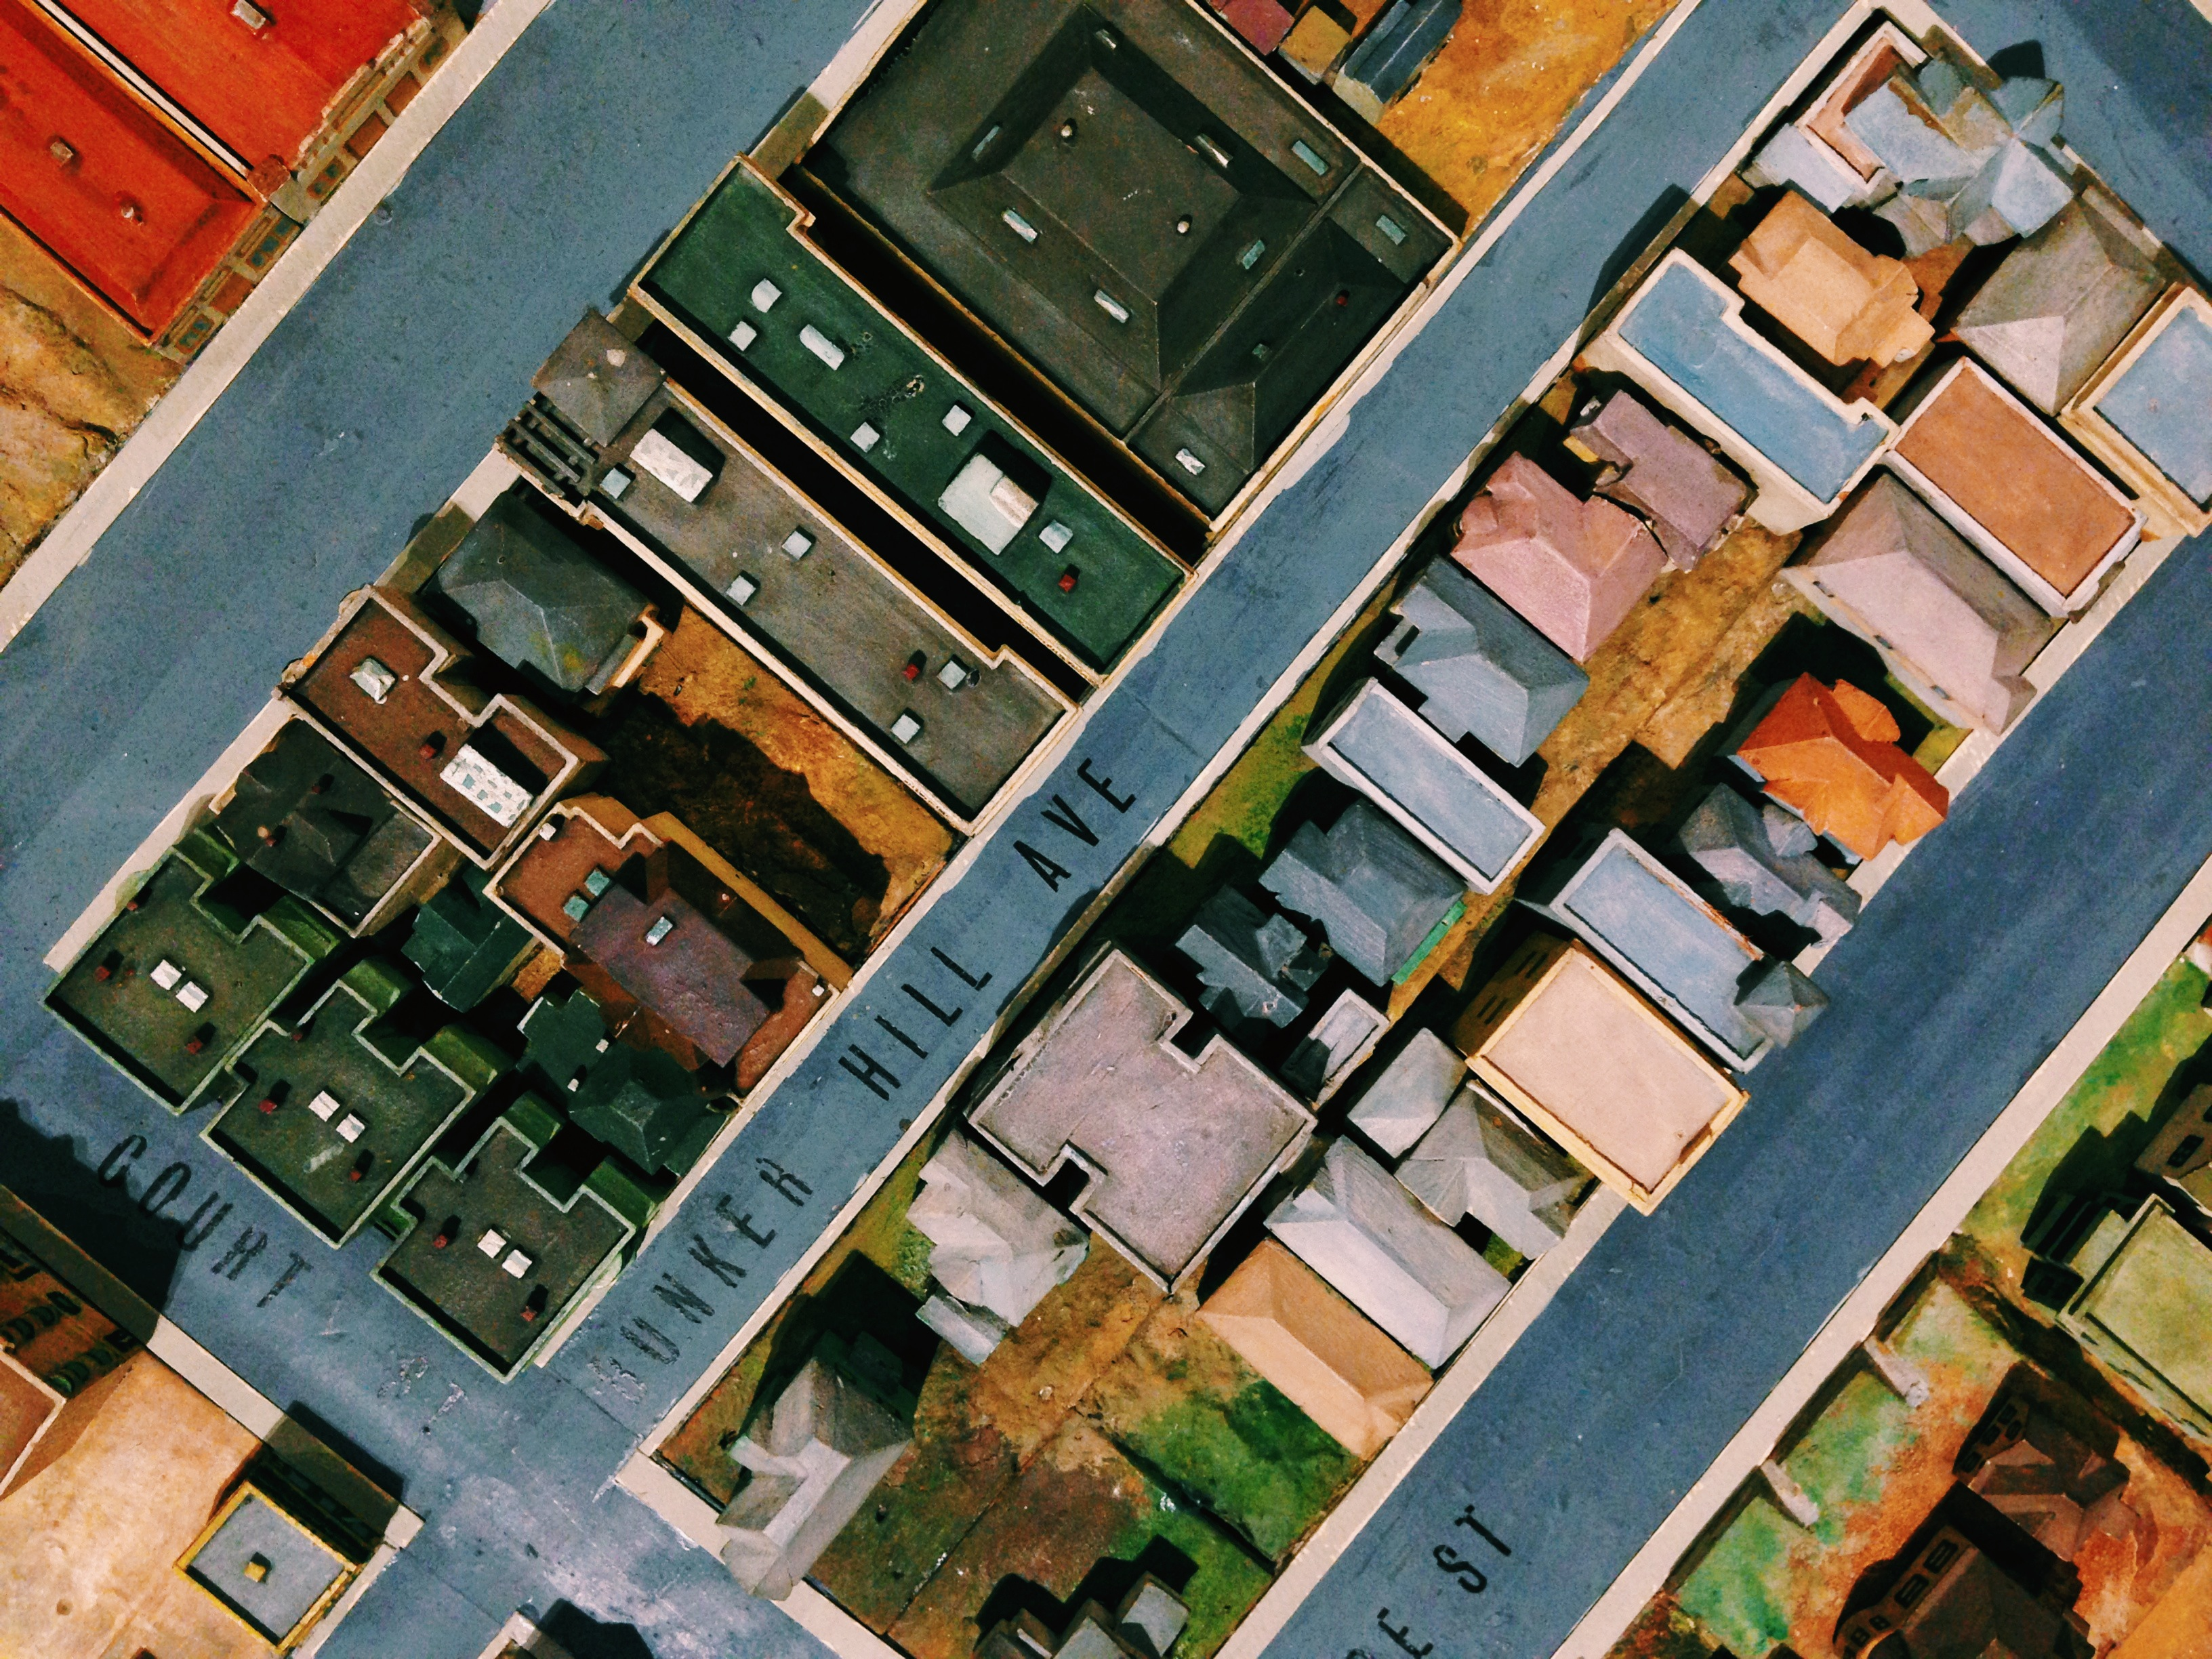 """ART OF TRANSIT: The model of downtown Los Angeles in 1940 in the Museum of Natural History's """"Becoming L.A."""" exhibit. Photo by Steve Hymon."""